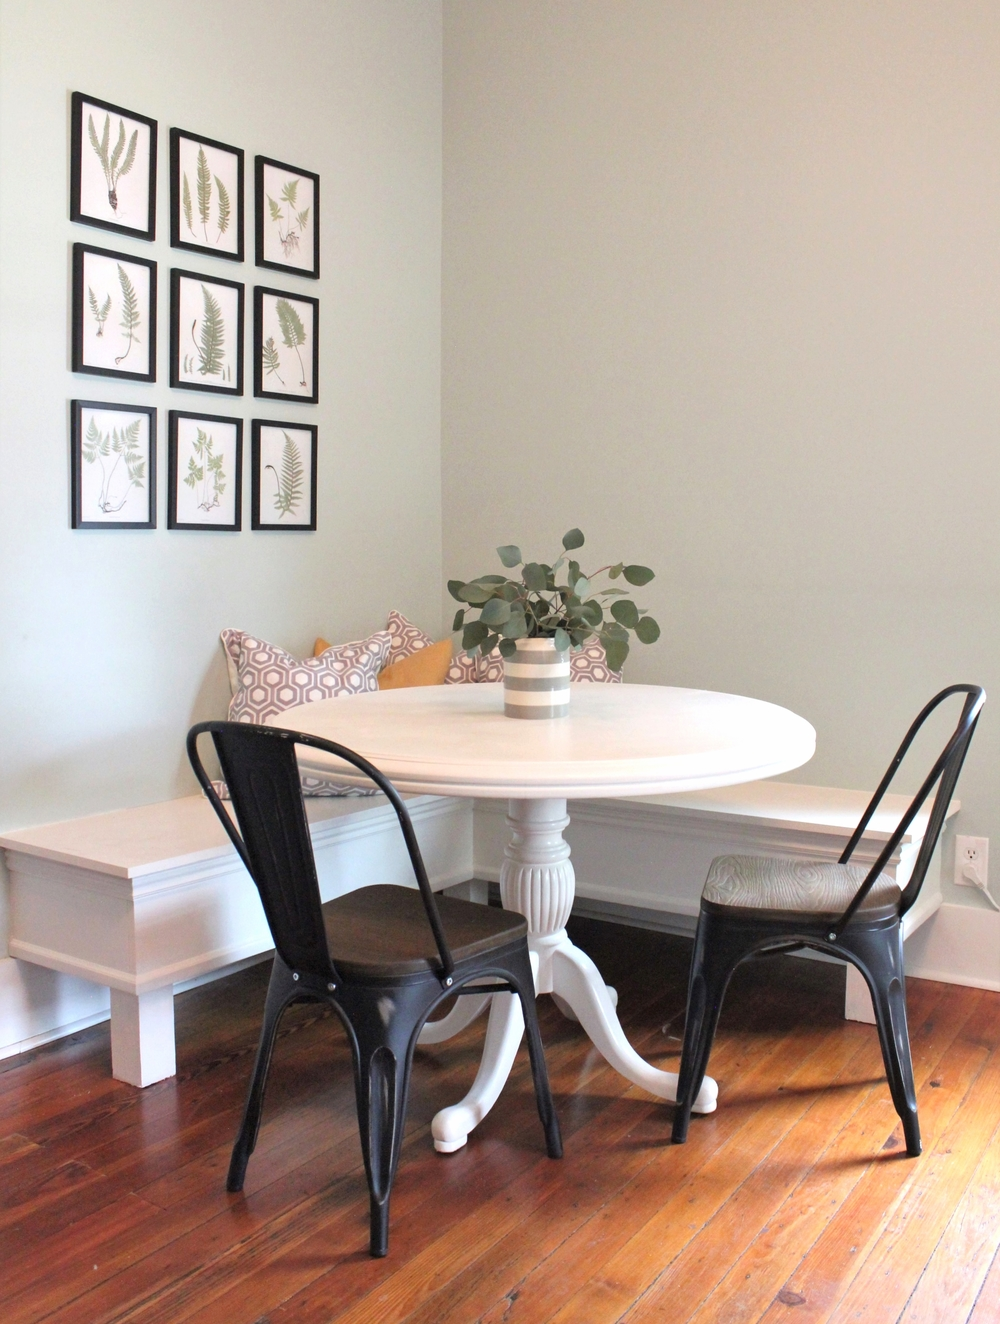 Chairs: Wayfair // Banquette: Peach & Pine Custom // Table: Craigslist // Pillows: West Elm // Vase: Target  // Frames: Hobby Lobby // Furniture Paint Color: Dove White by Valspar